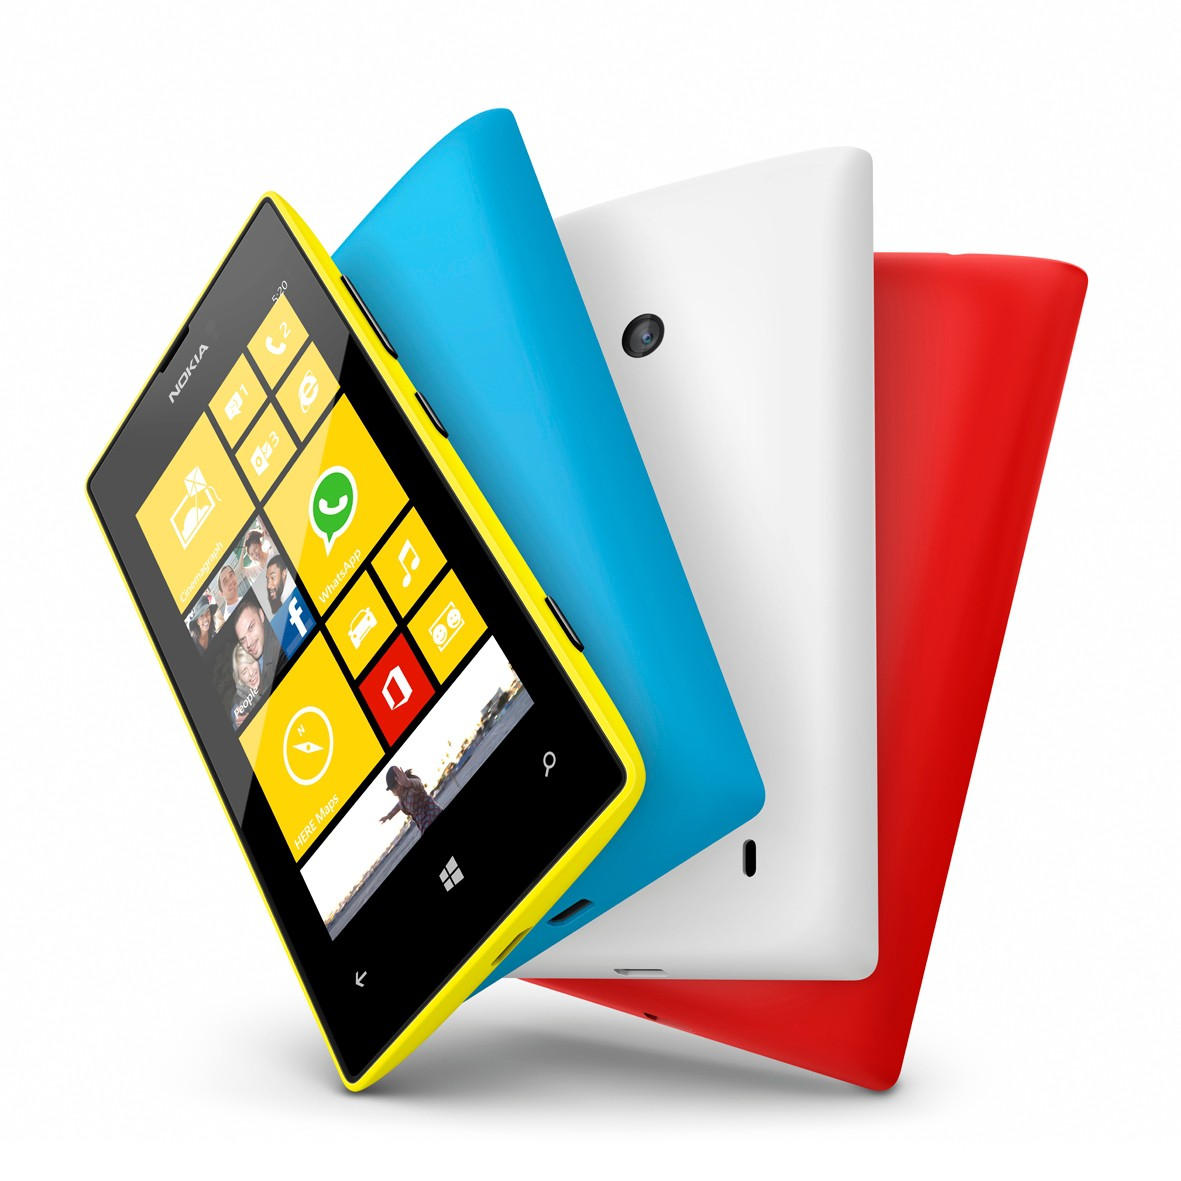 appistan nokia lumia 520 windows phone 8 price specifications. Black Bedroom Furniture Sets. Home Design Ideas